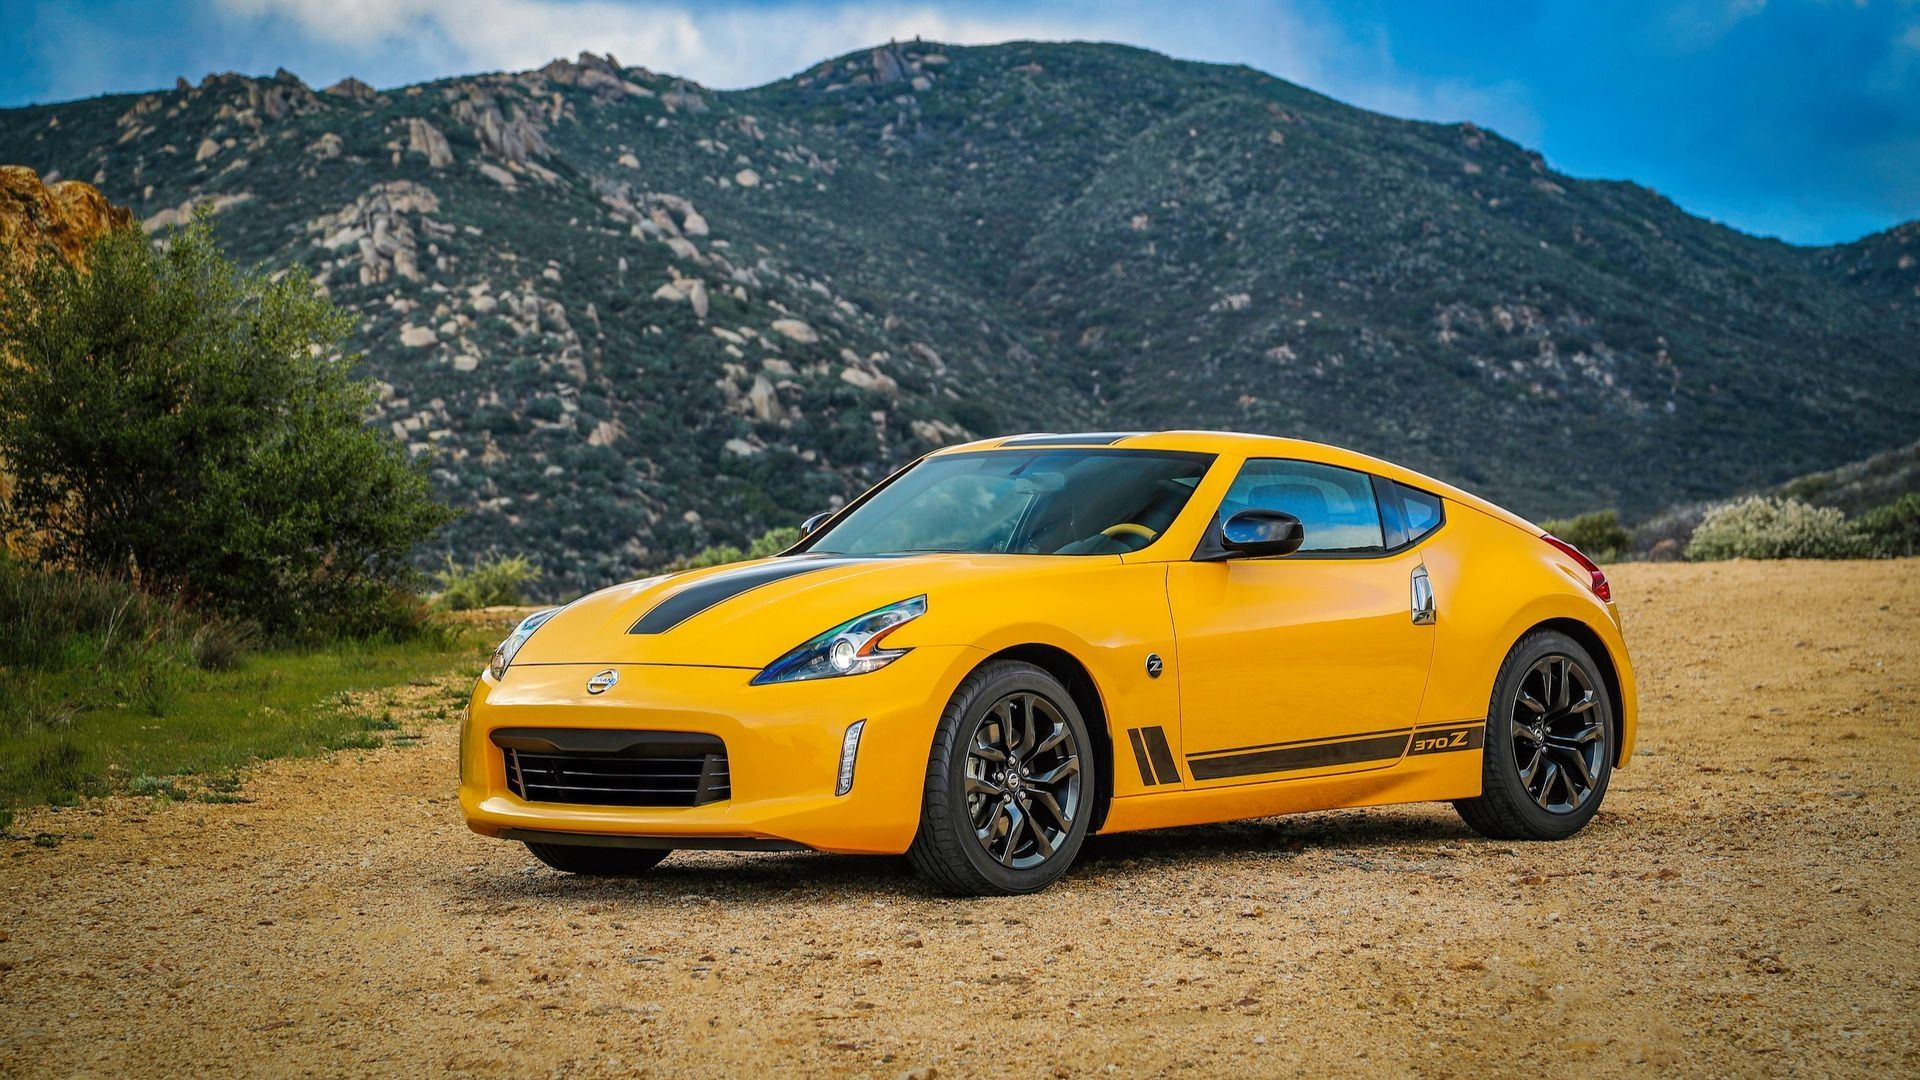 New 2020 Nissan 370z Nismo Release Specs And Review Nissan 370z Nismo Nissan 370z Nissan